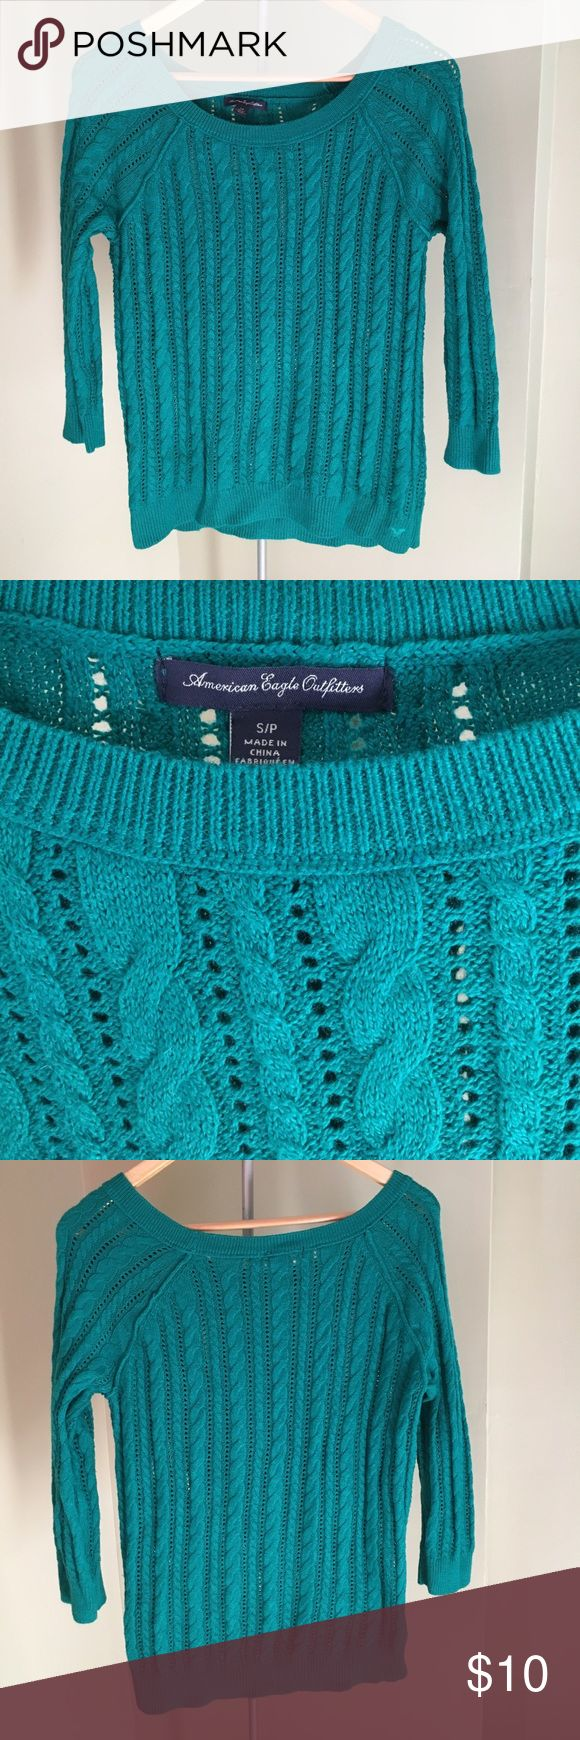 American Eagle Outfitters sweater AE outfitters sweater in a beautiful forest green color. Size s American Eagle Outfitters Sweaters Crew & Scoop Necks